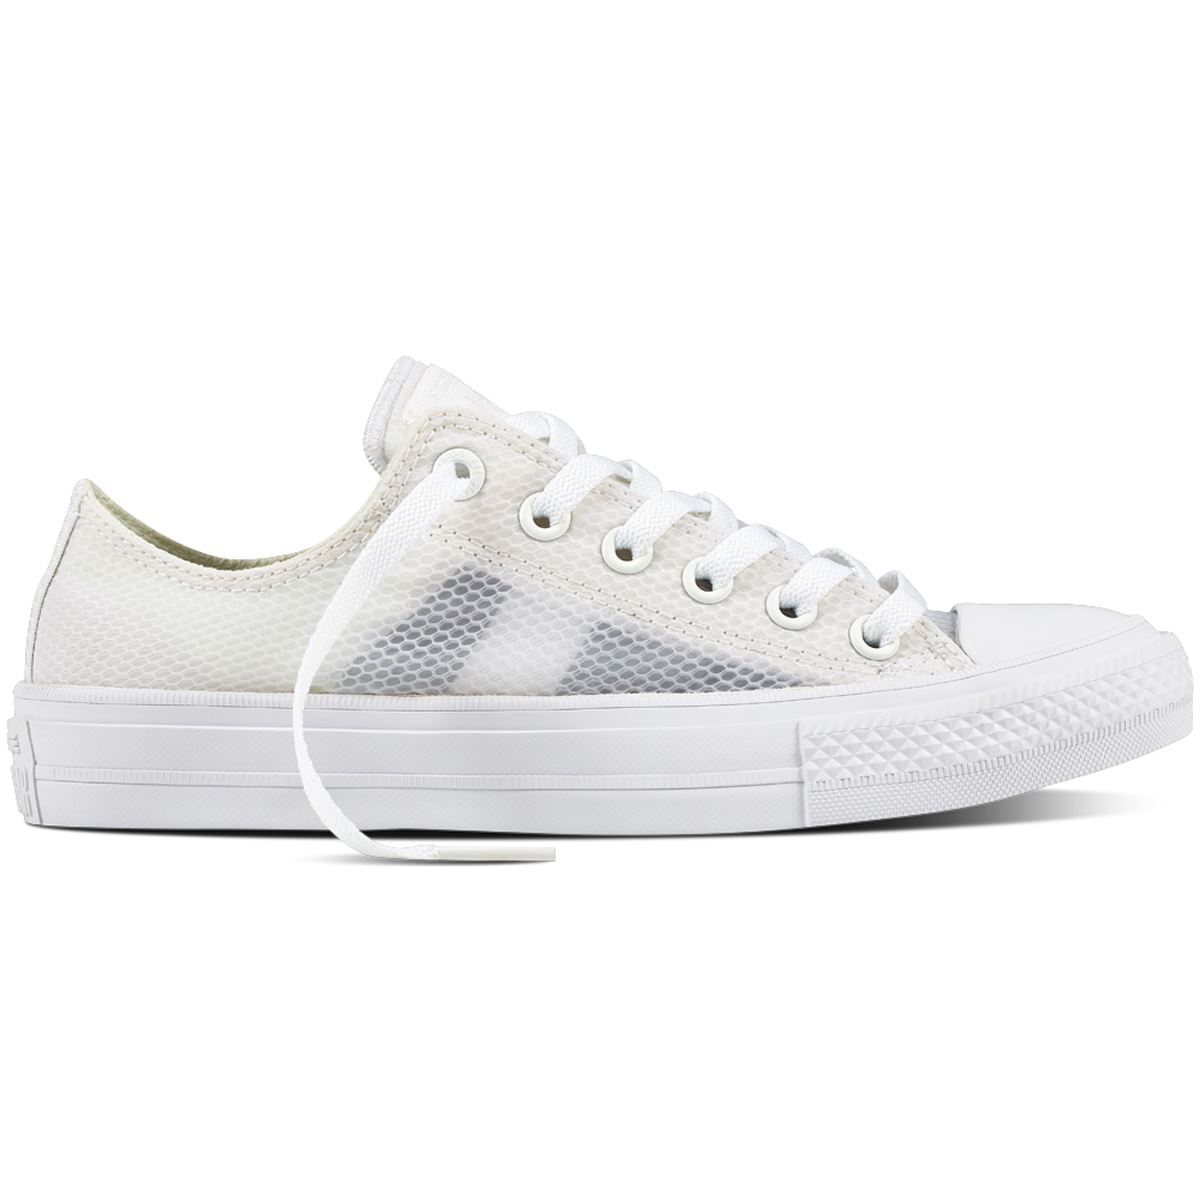 Details about Converse CT AS 2 Ox Sheen Mesh White Women's Low Top Trainers